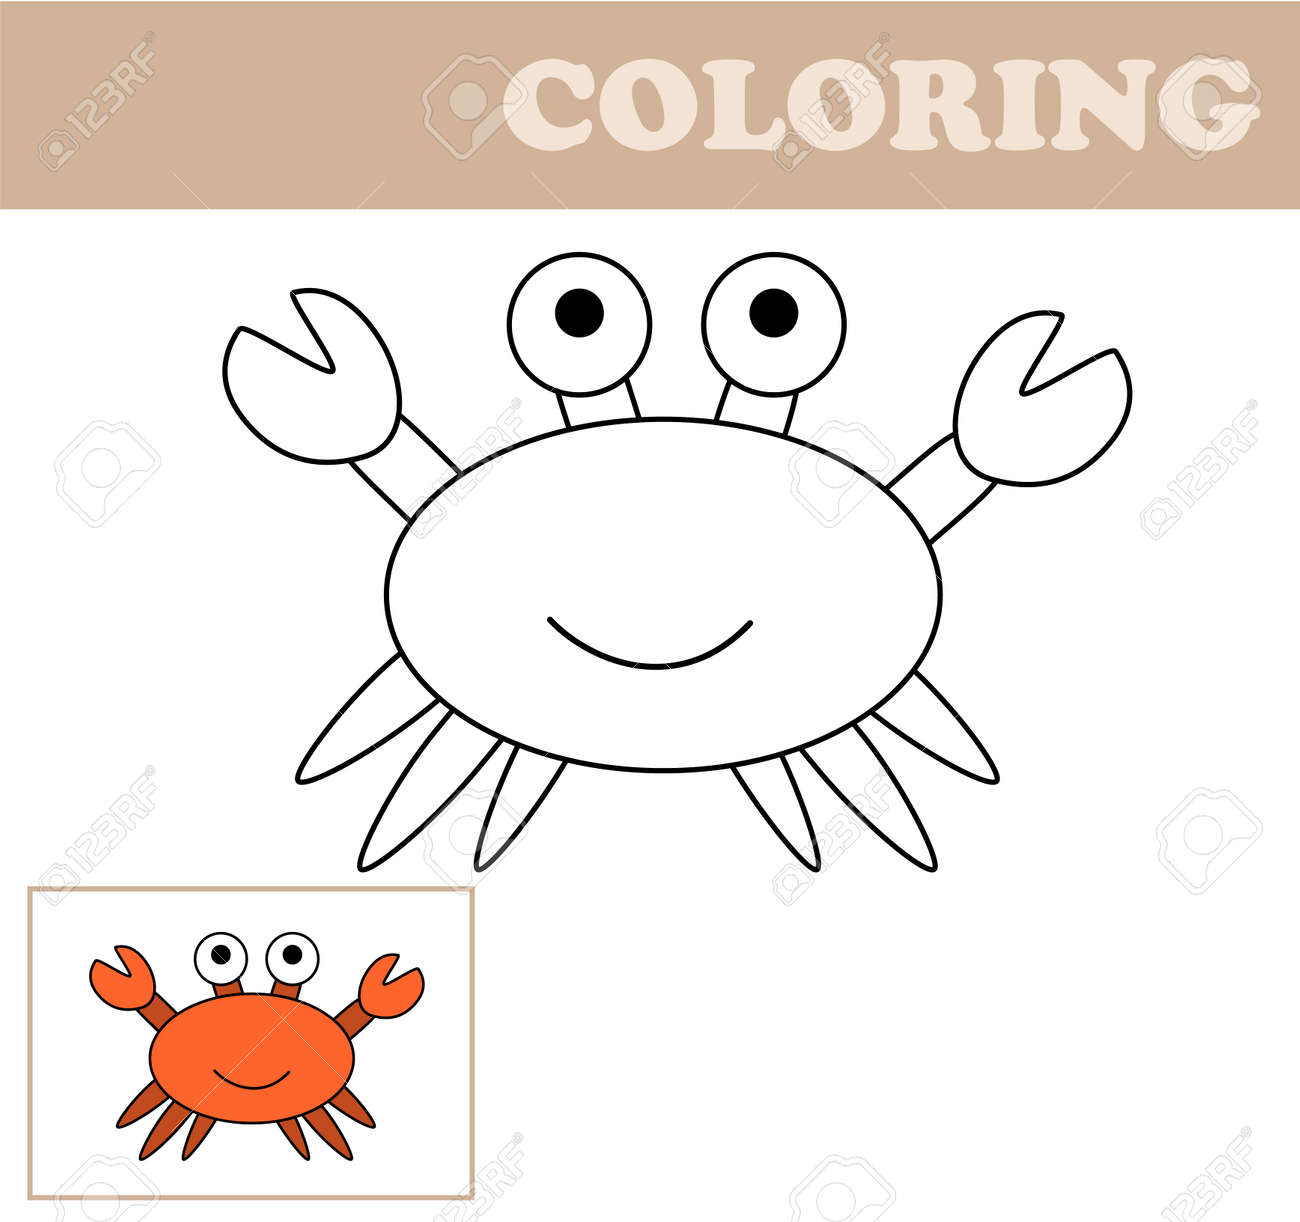 Coloring Page With Crab Book For Children Educational Childrens Game Drawing Kids